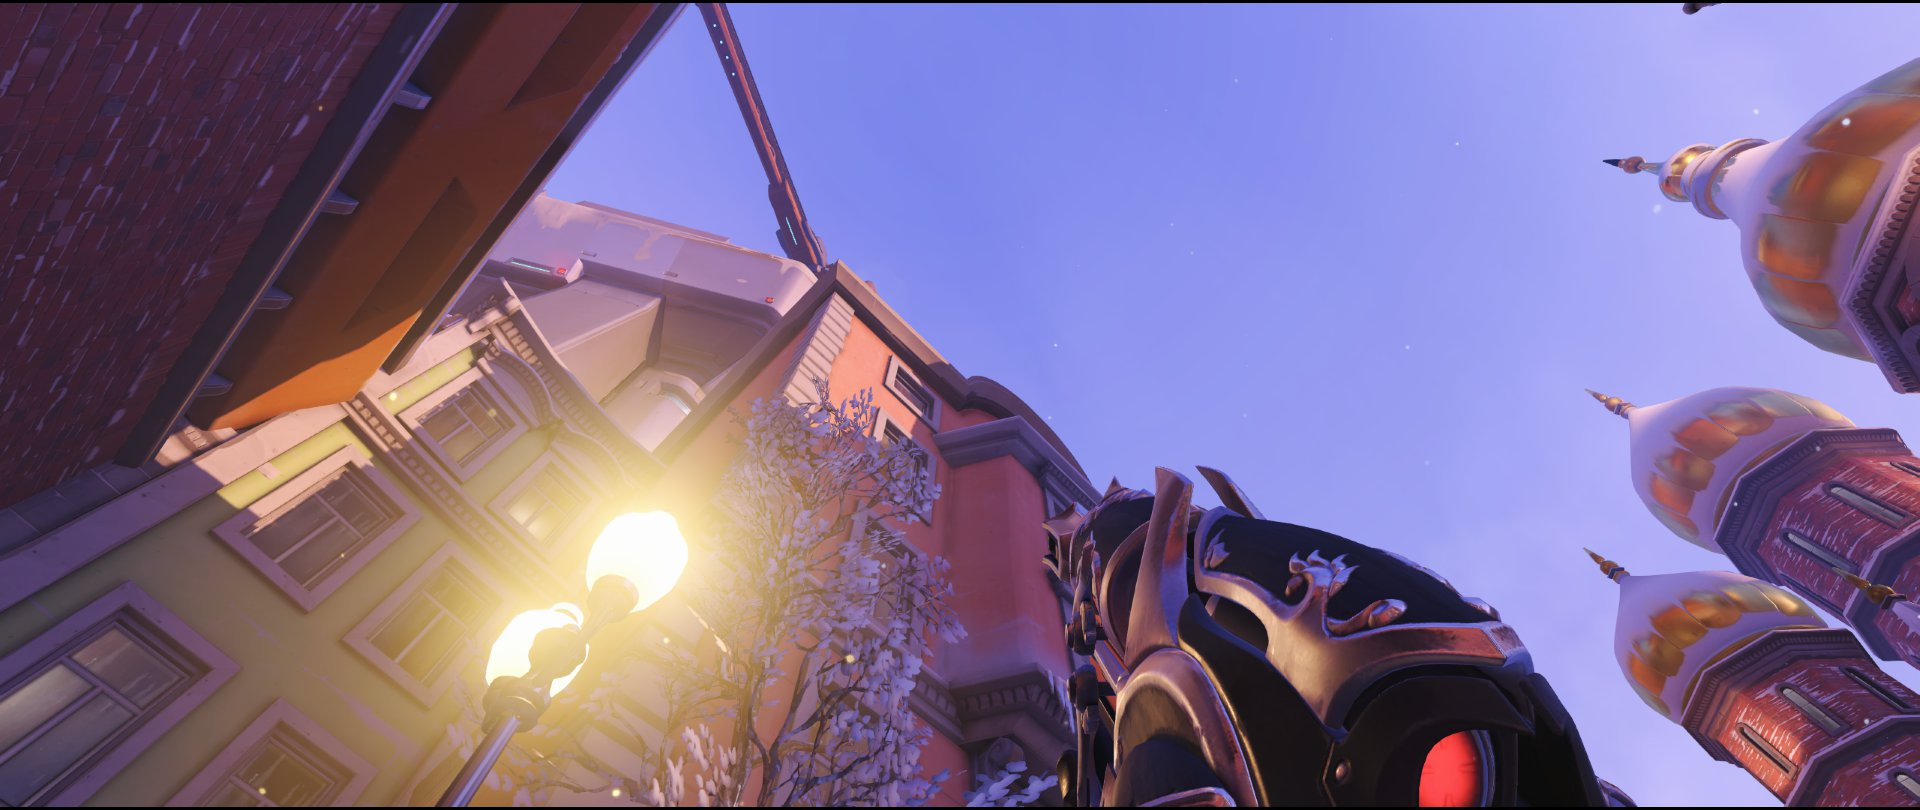 Manor high ground defense sniping spot Widowmaker Volskaya Industries Overwatch.jpg